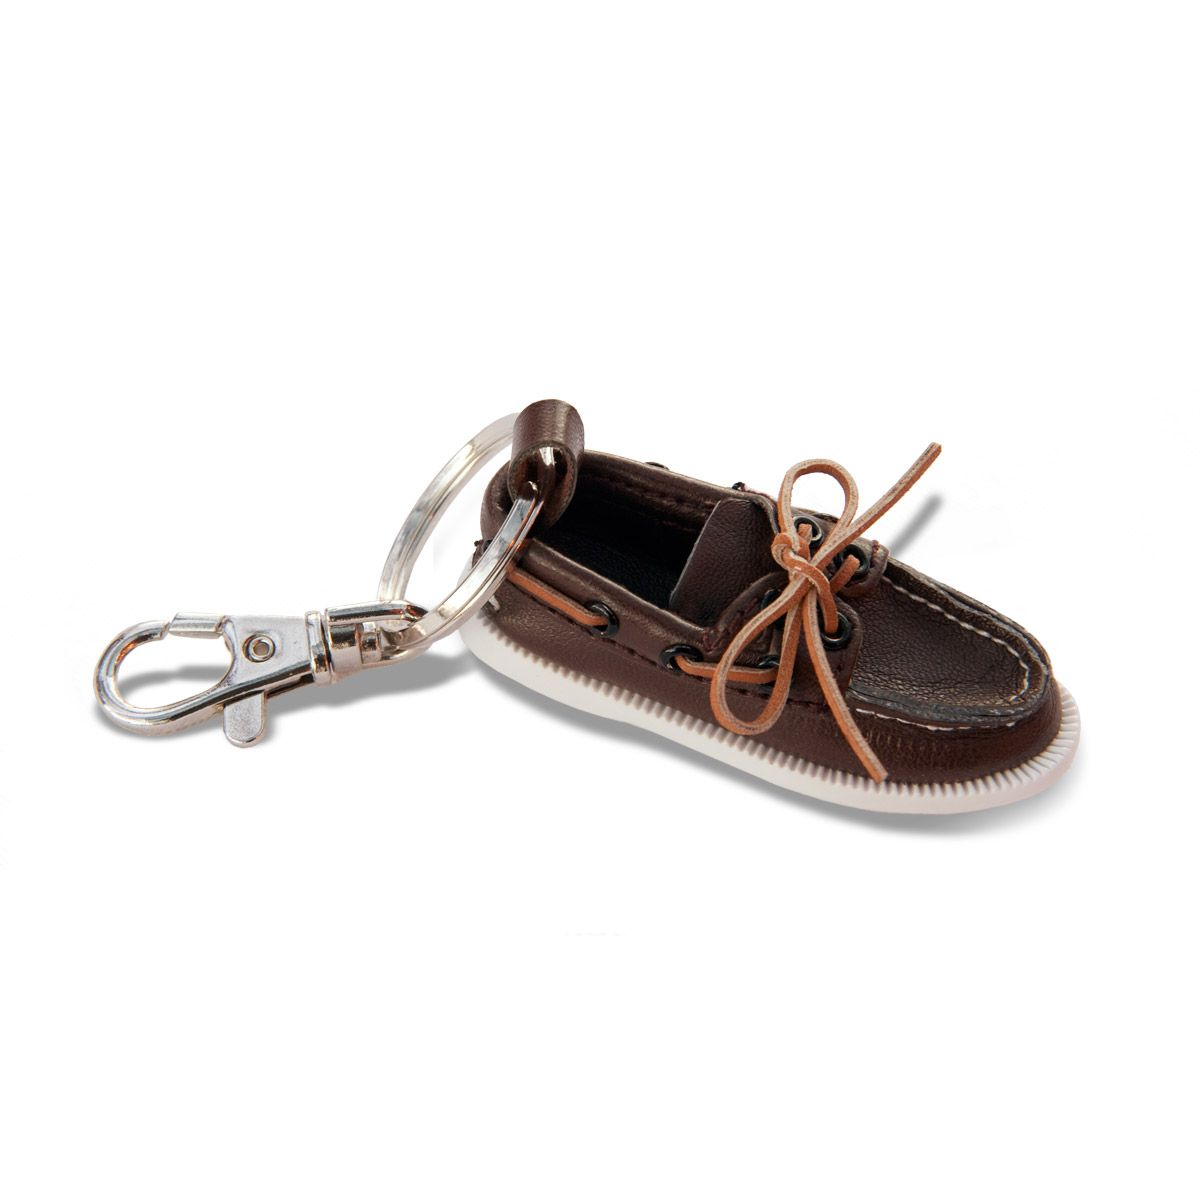 Sperry Top Sider Authentic Original Classic Brown Boat Shoe Key